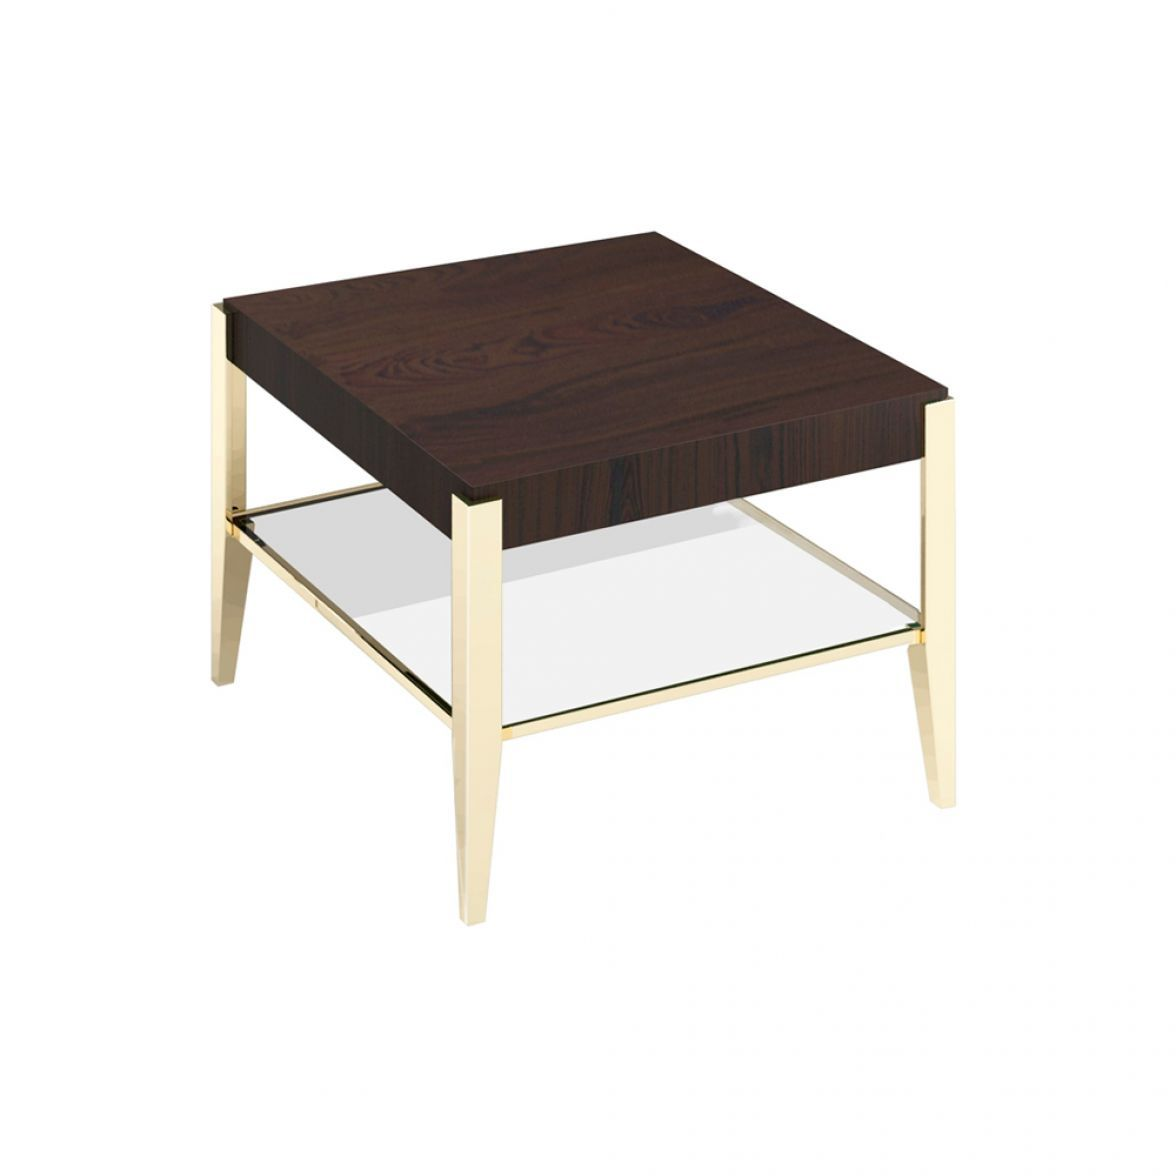 Alias side table